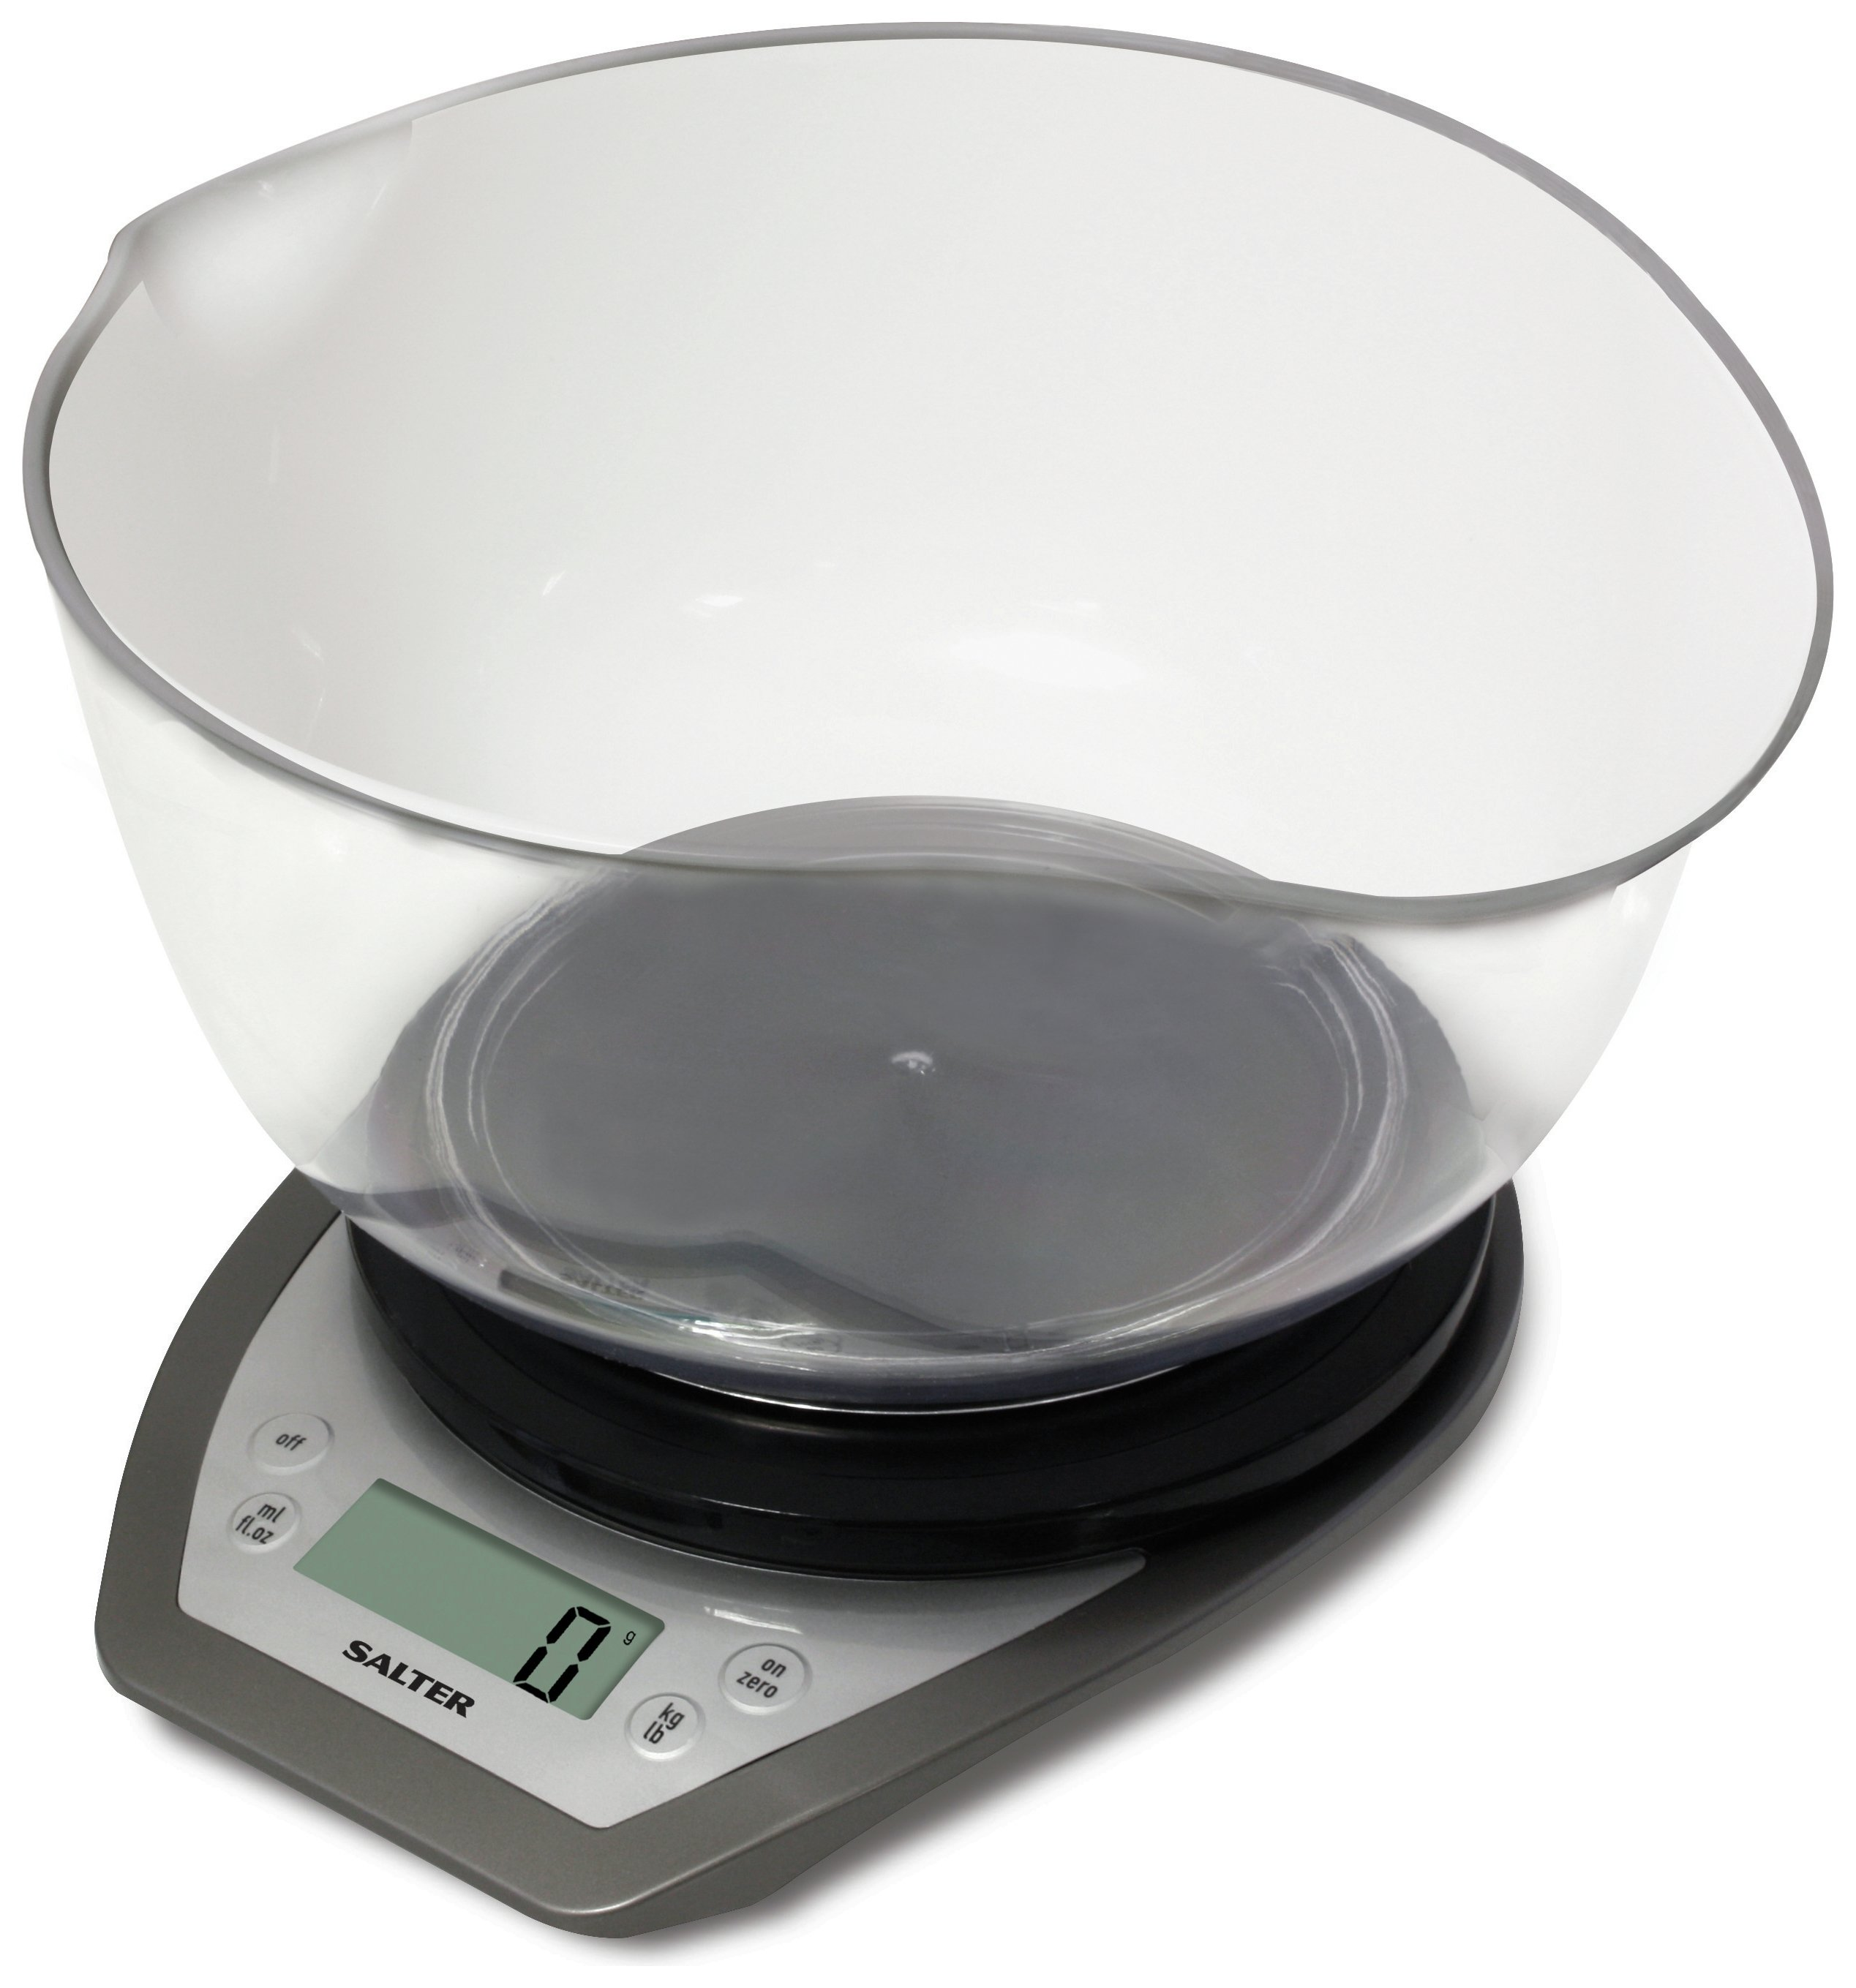 Salter Aquatronic Kitchen Scale and Bowl - Silver